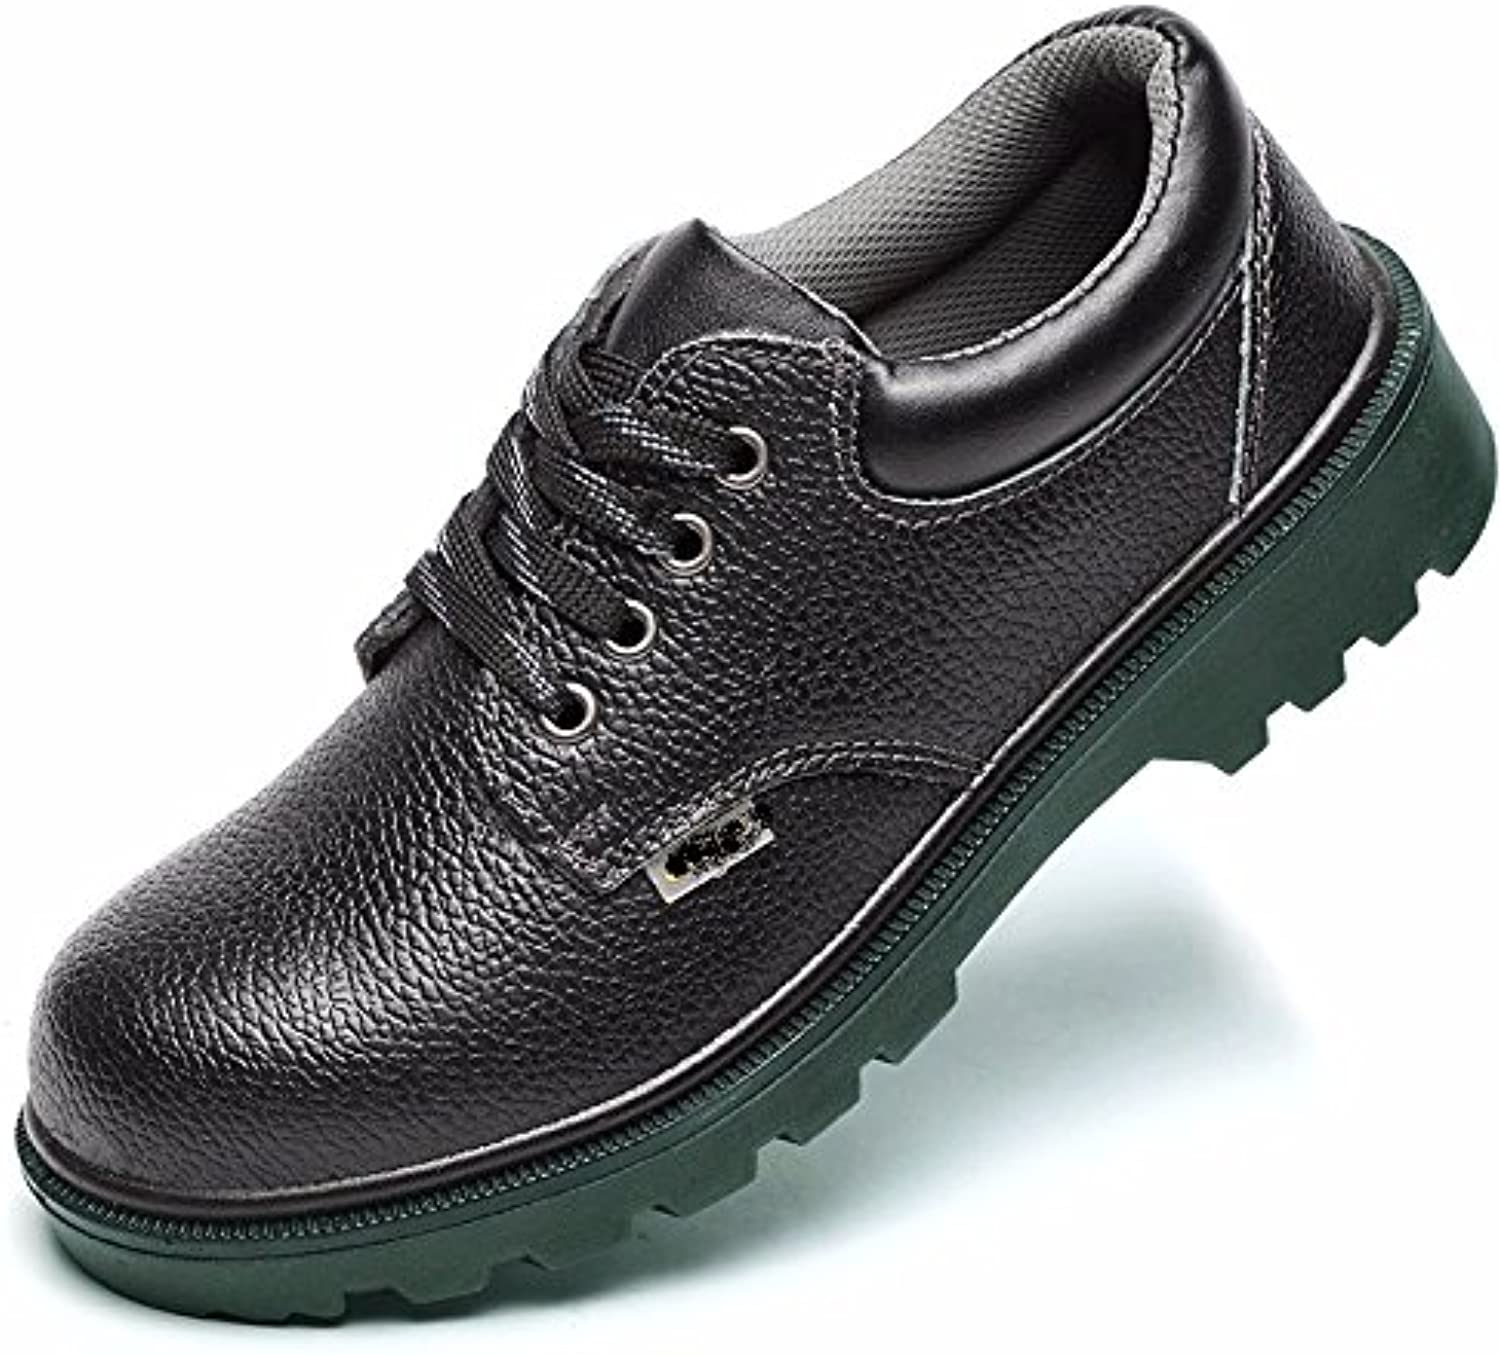 Black leather shoes for men outdoor work